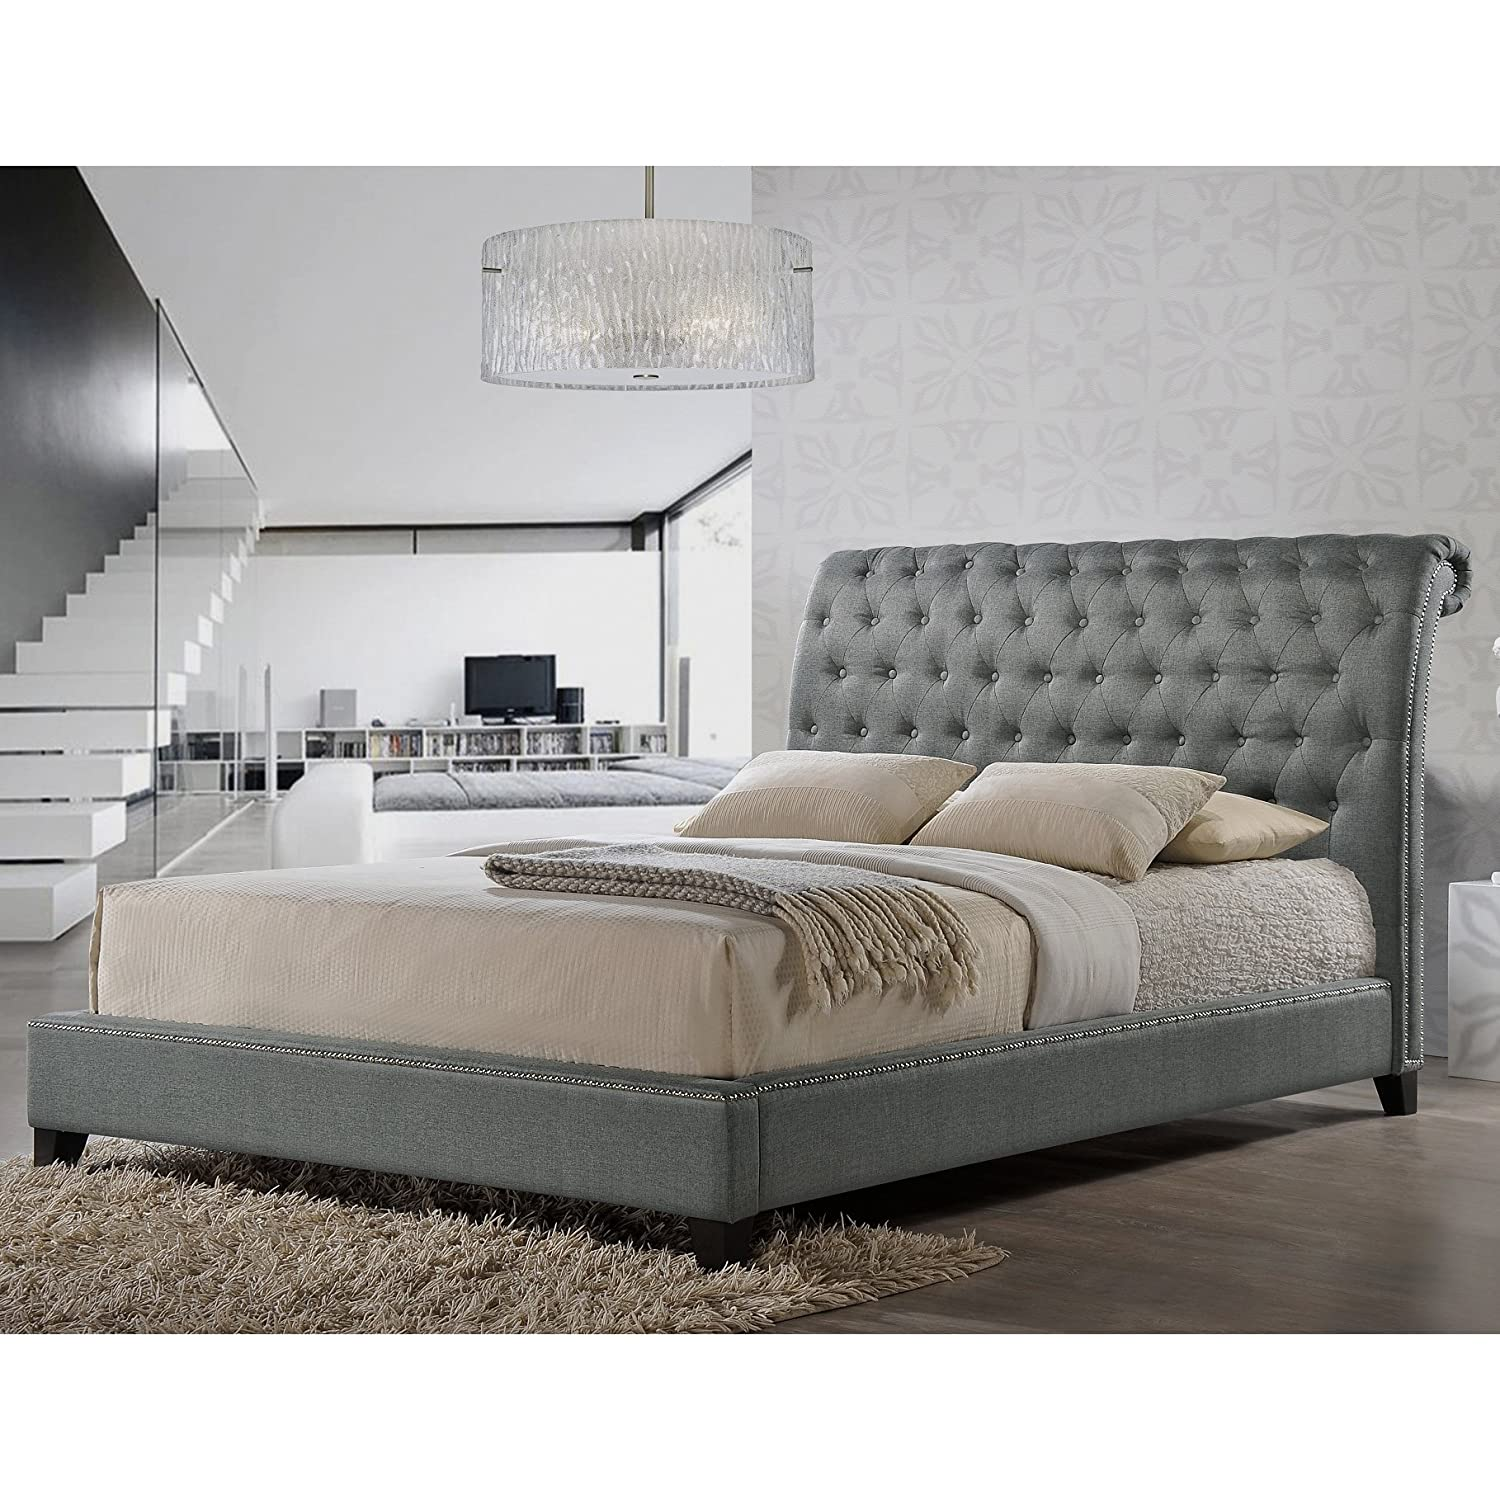 Design Tufted Bed amazon com baxton studio jazmin tufted modern bed with upholstered headboard queen light beige kitchen dining